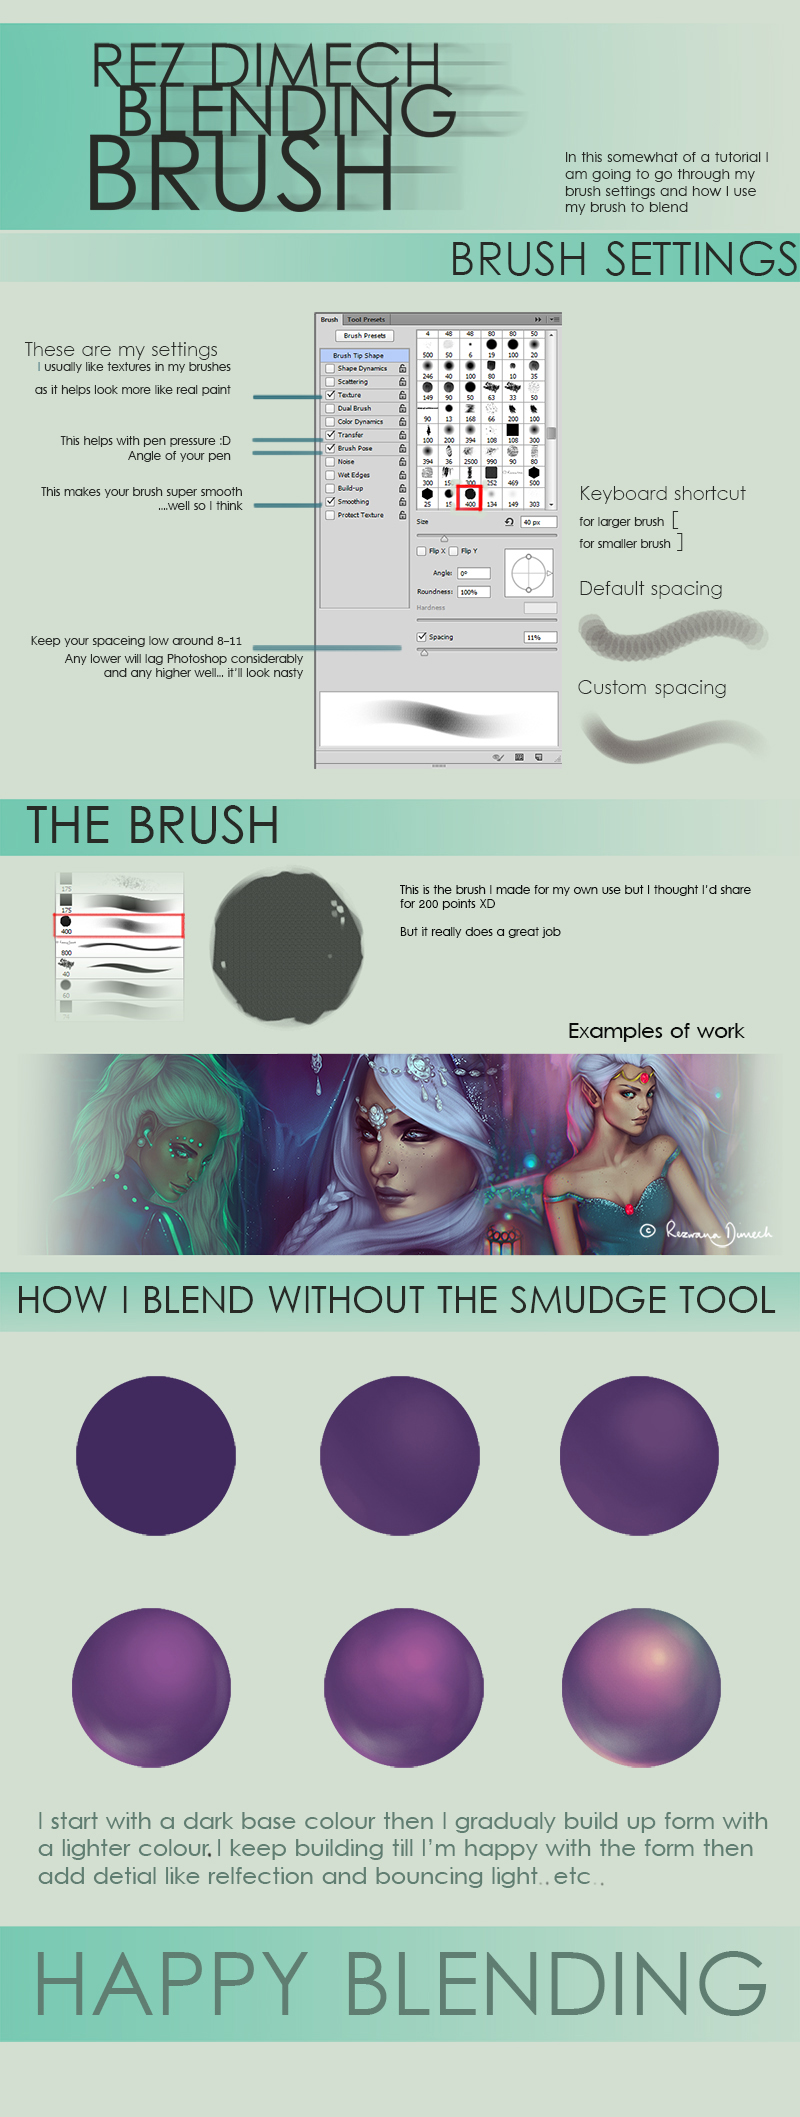 :Blending_Brush_Tutorial: by RezwanaDimech